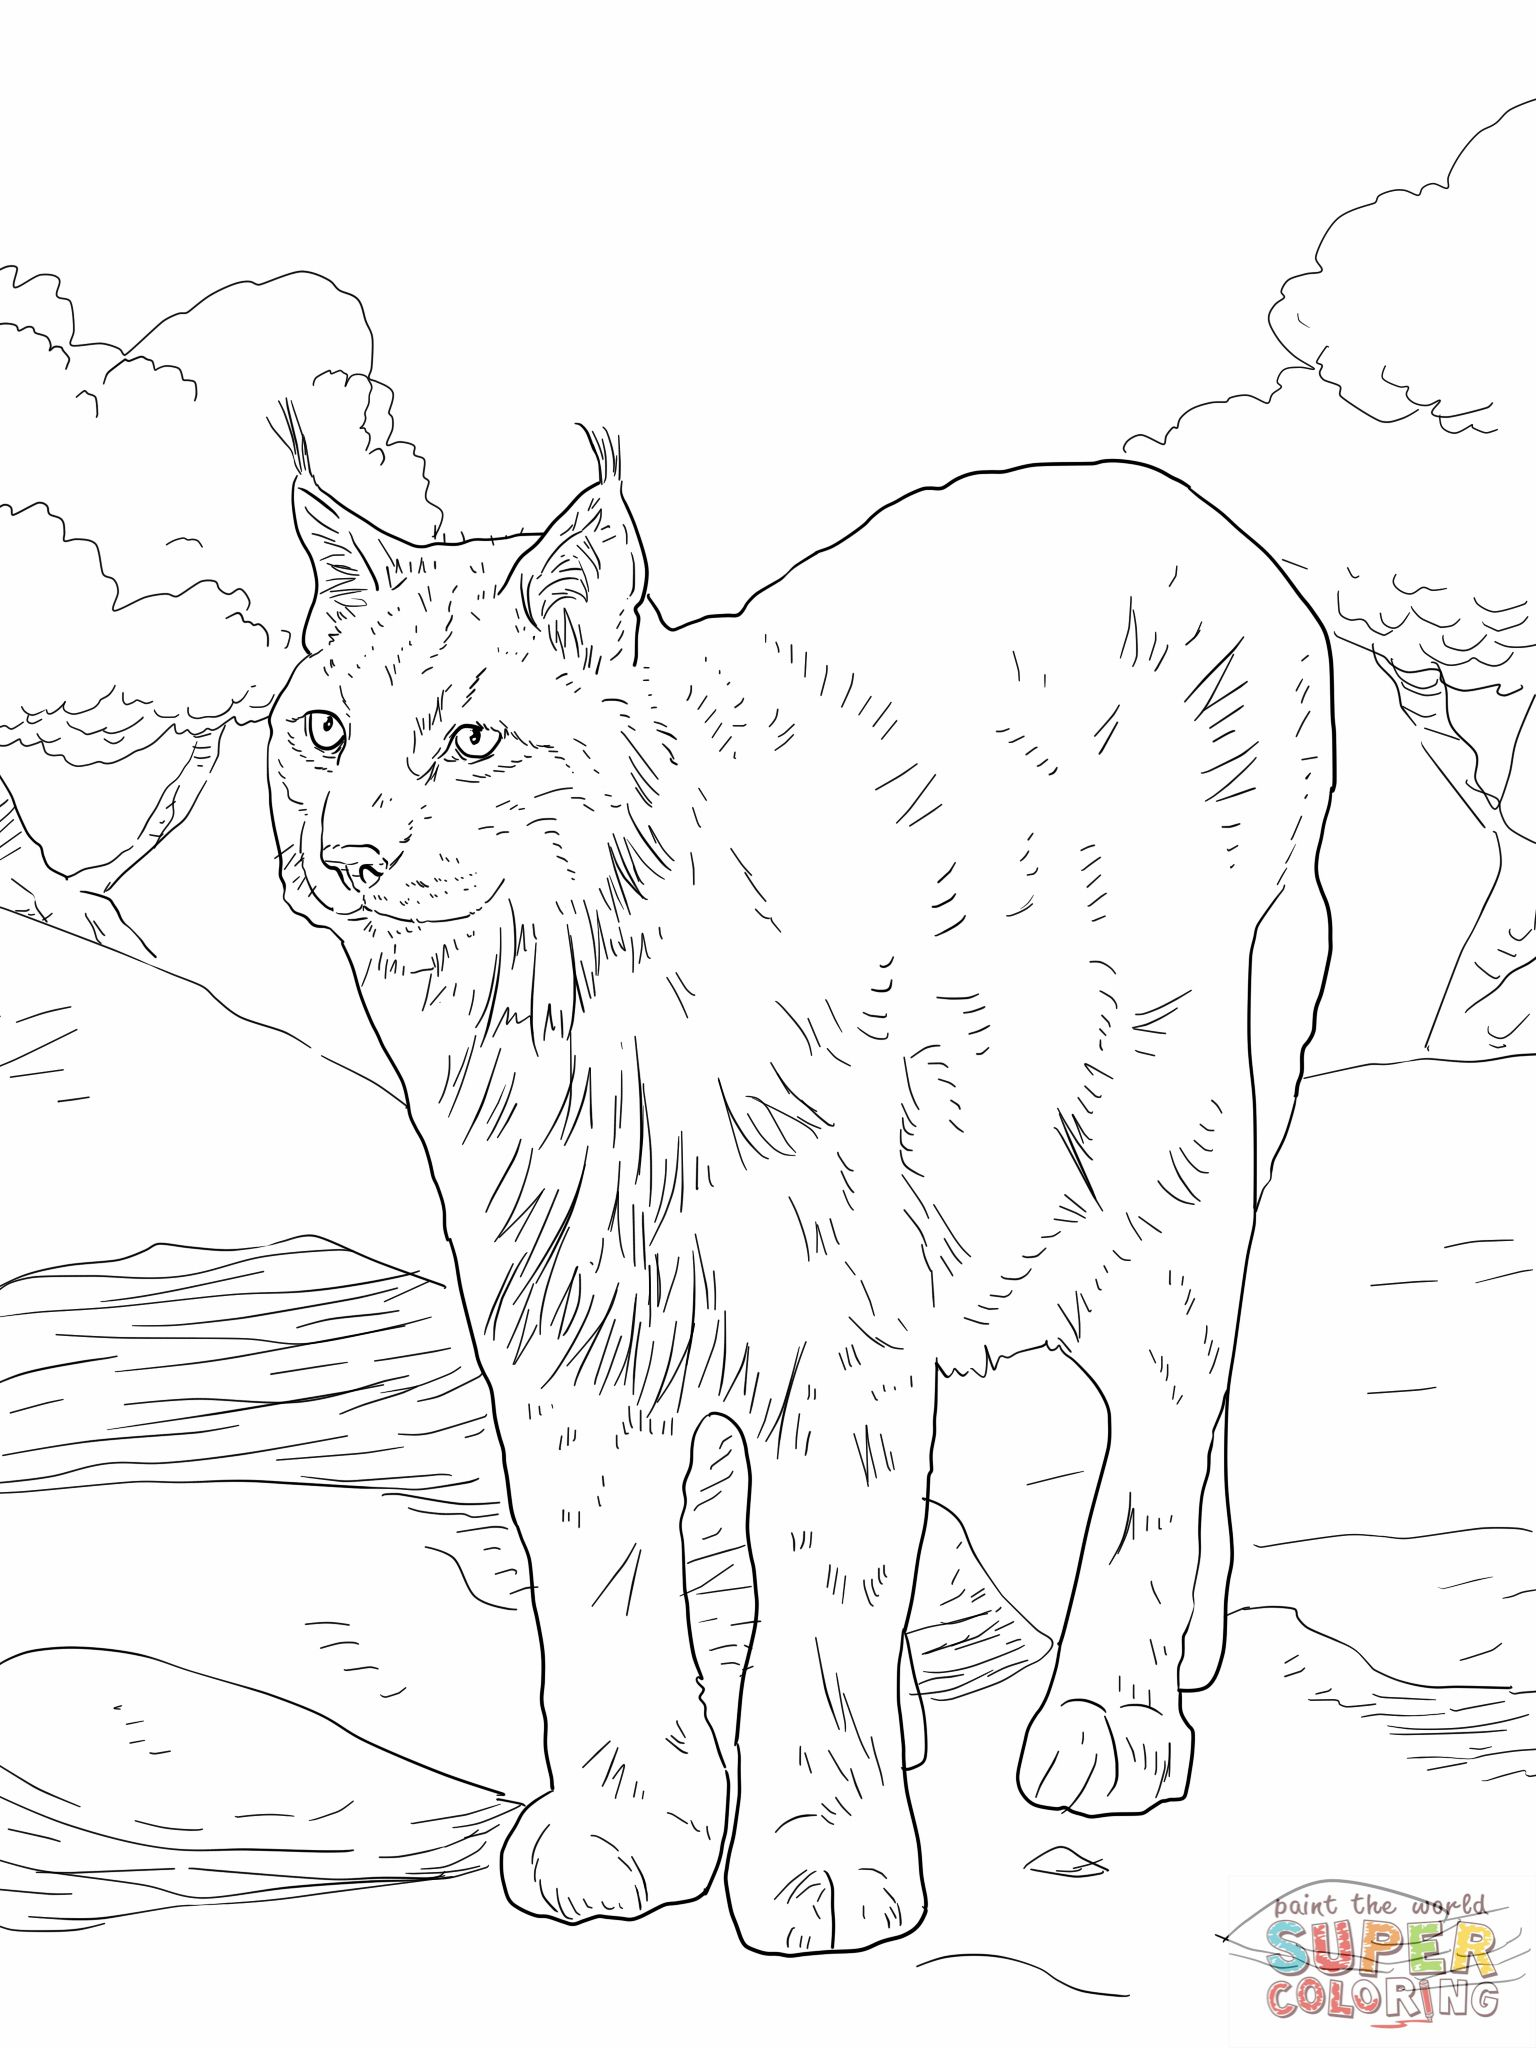 bobcat coloring pages | Lynx Coloring Pages Eurasian lynx coloring ...